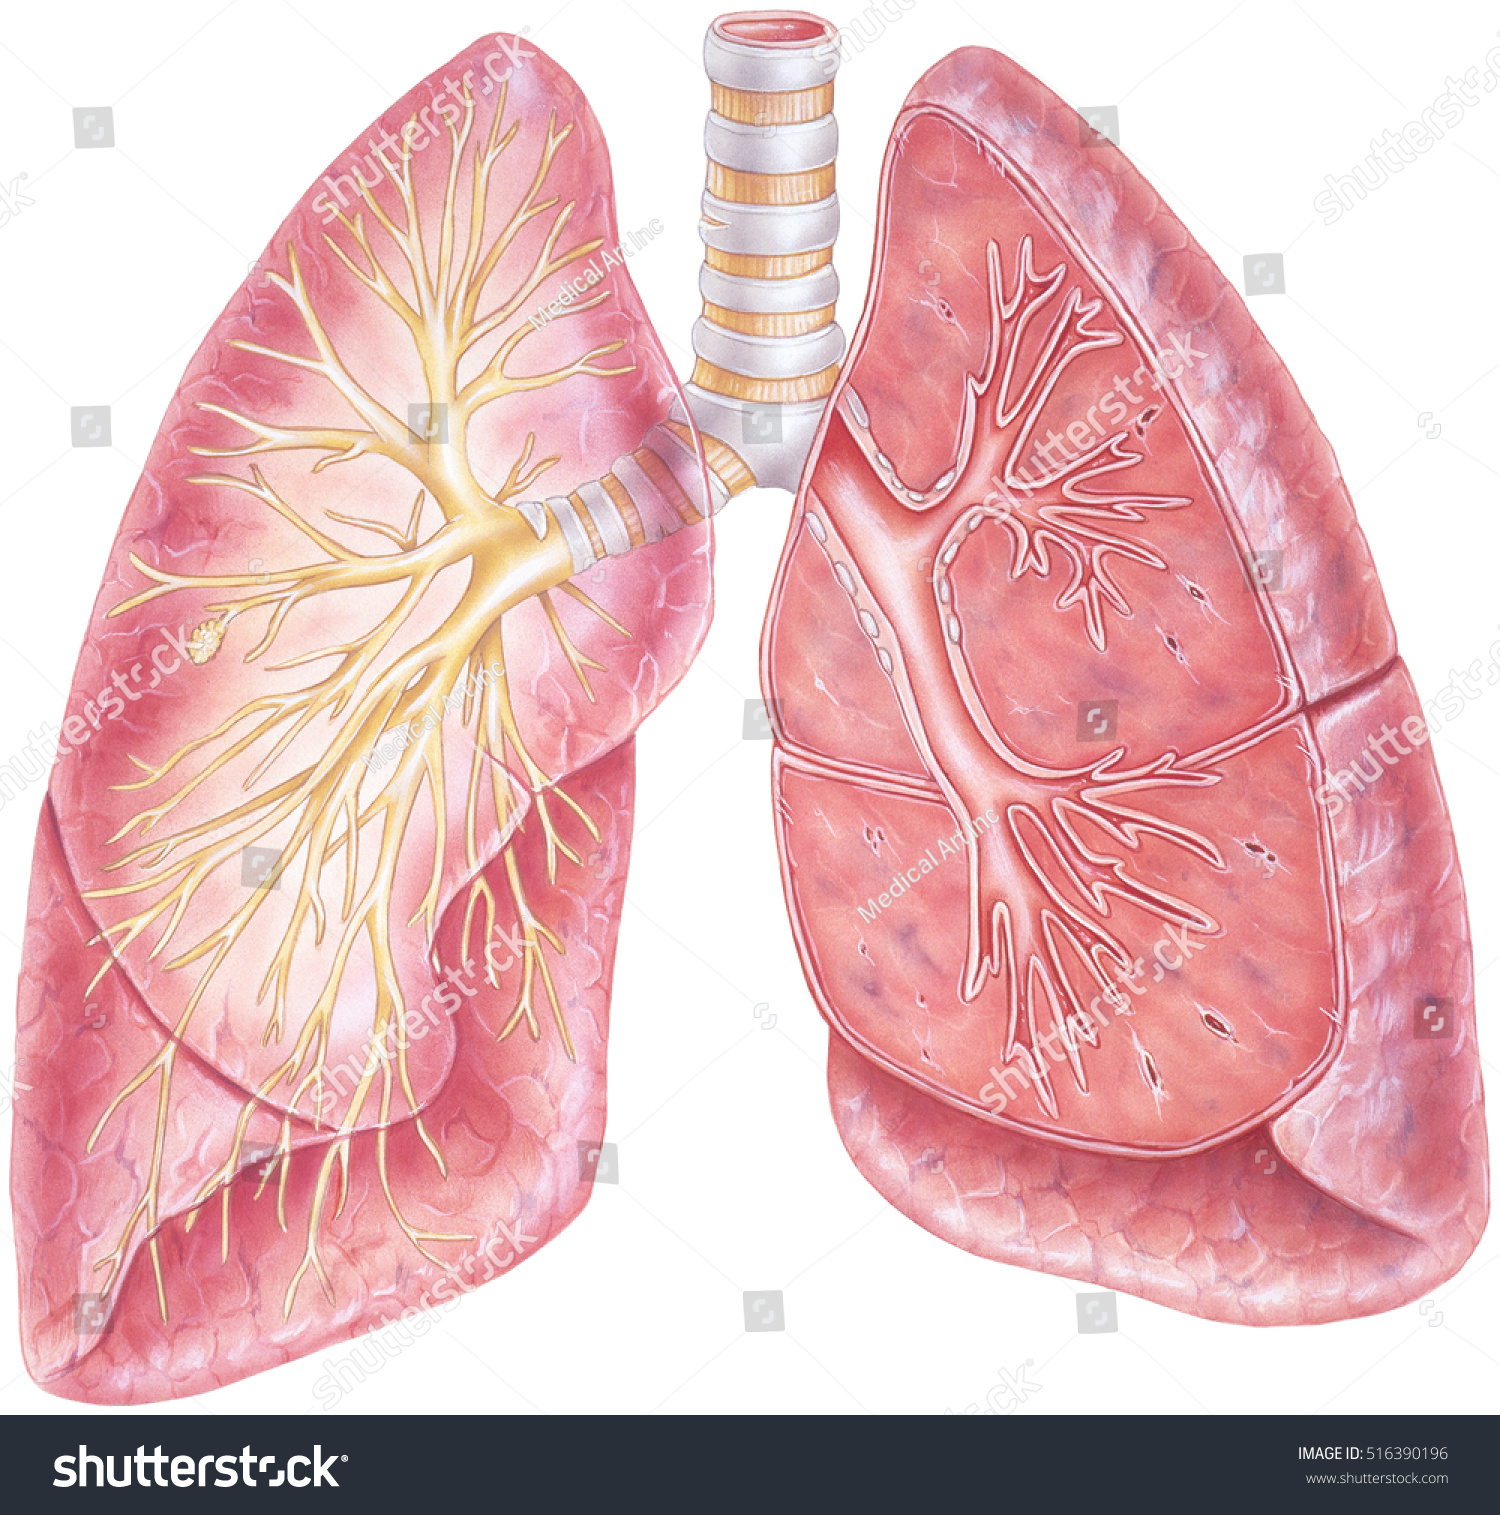 Lungs Cutaway View Human Lungs Showing Stock Illustration ...